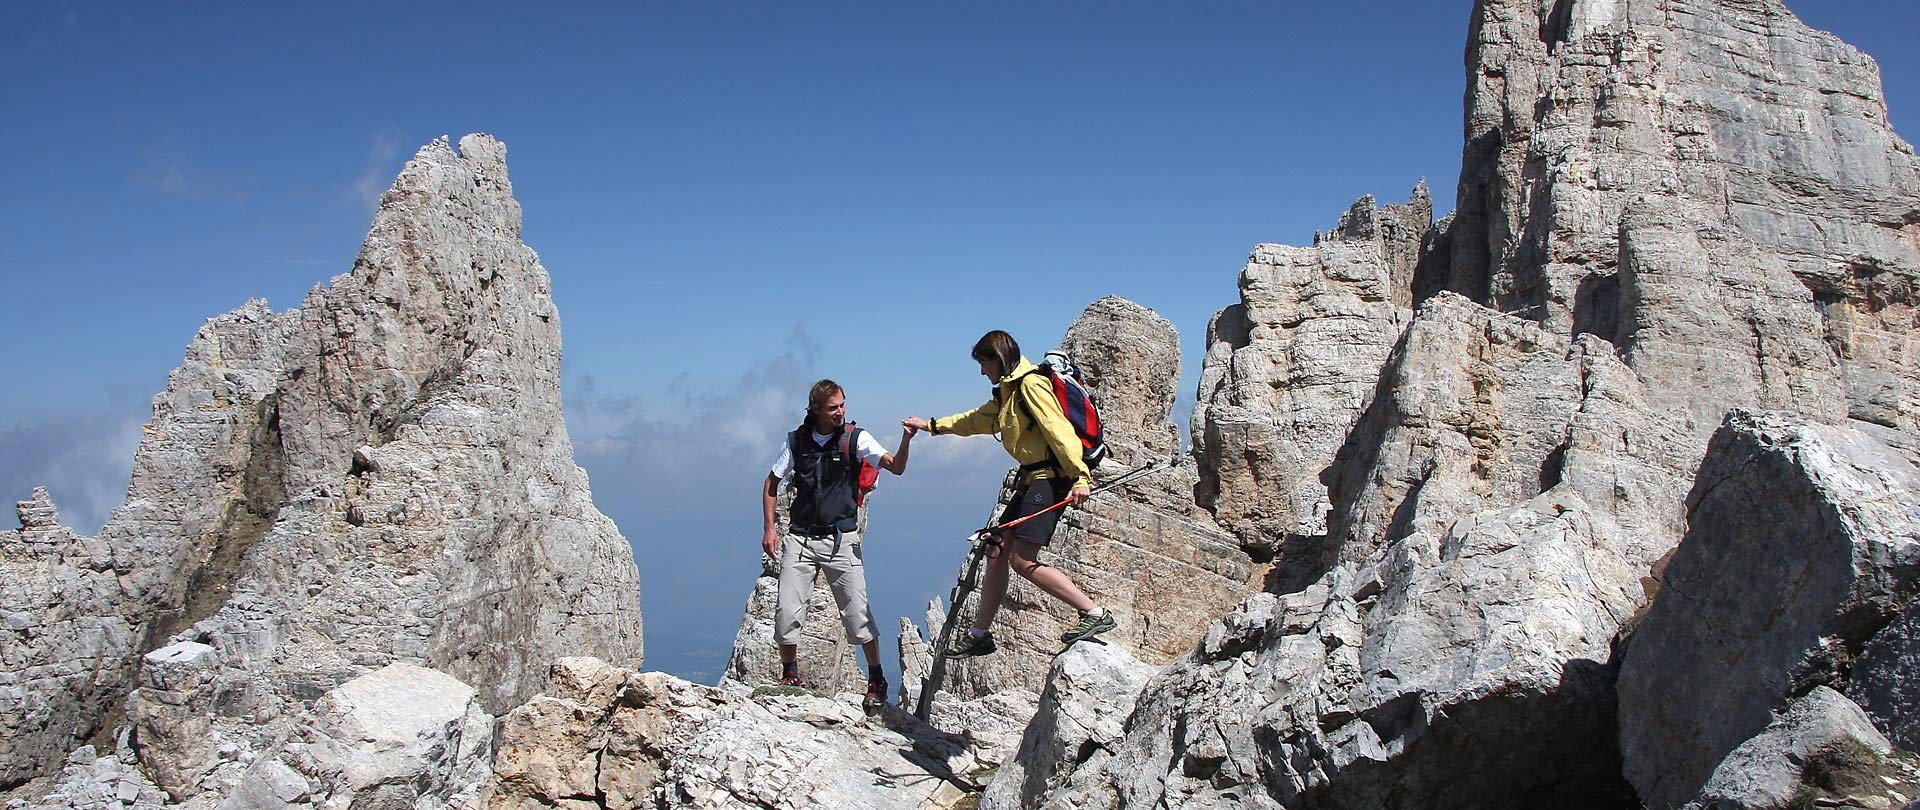 Climbing routes and vie ferrate